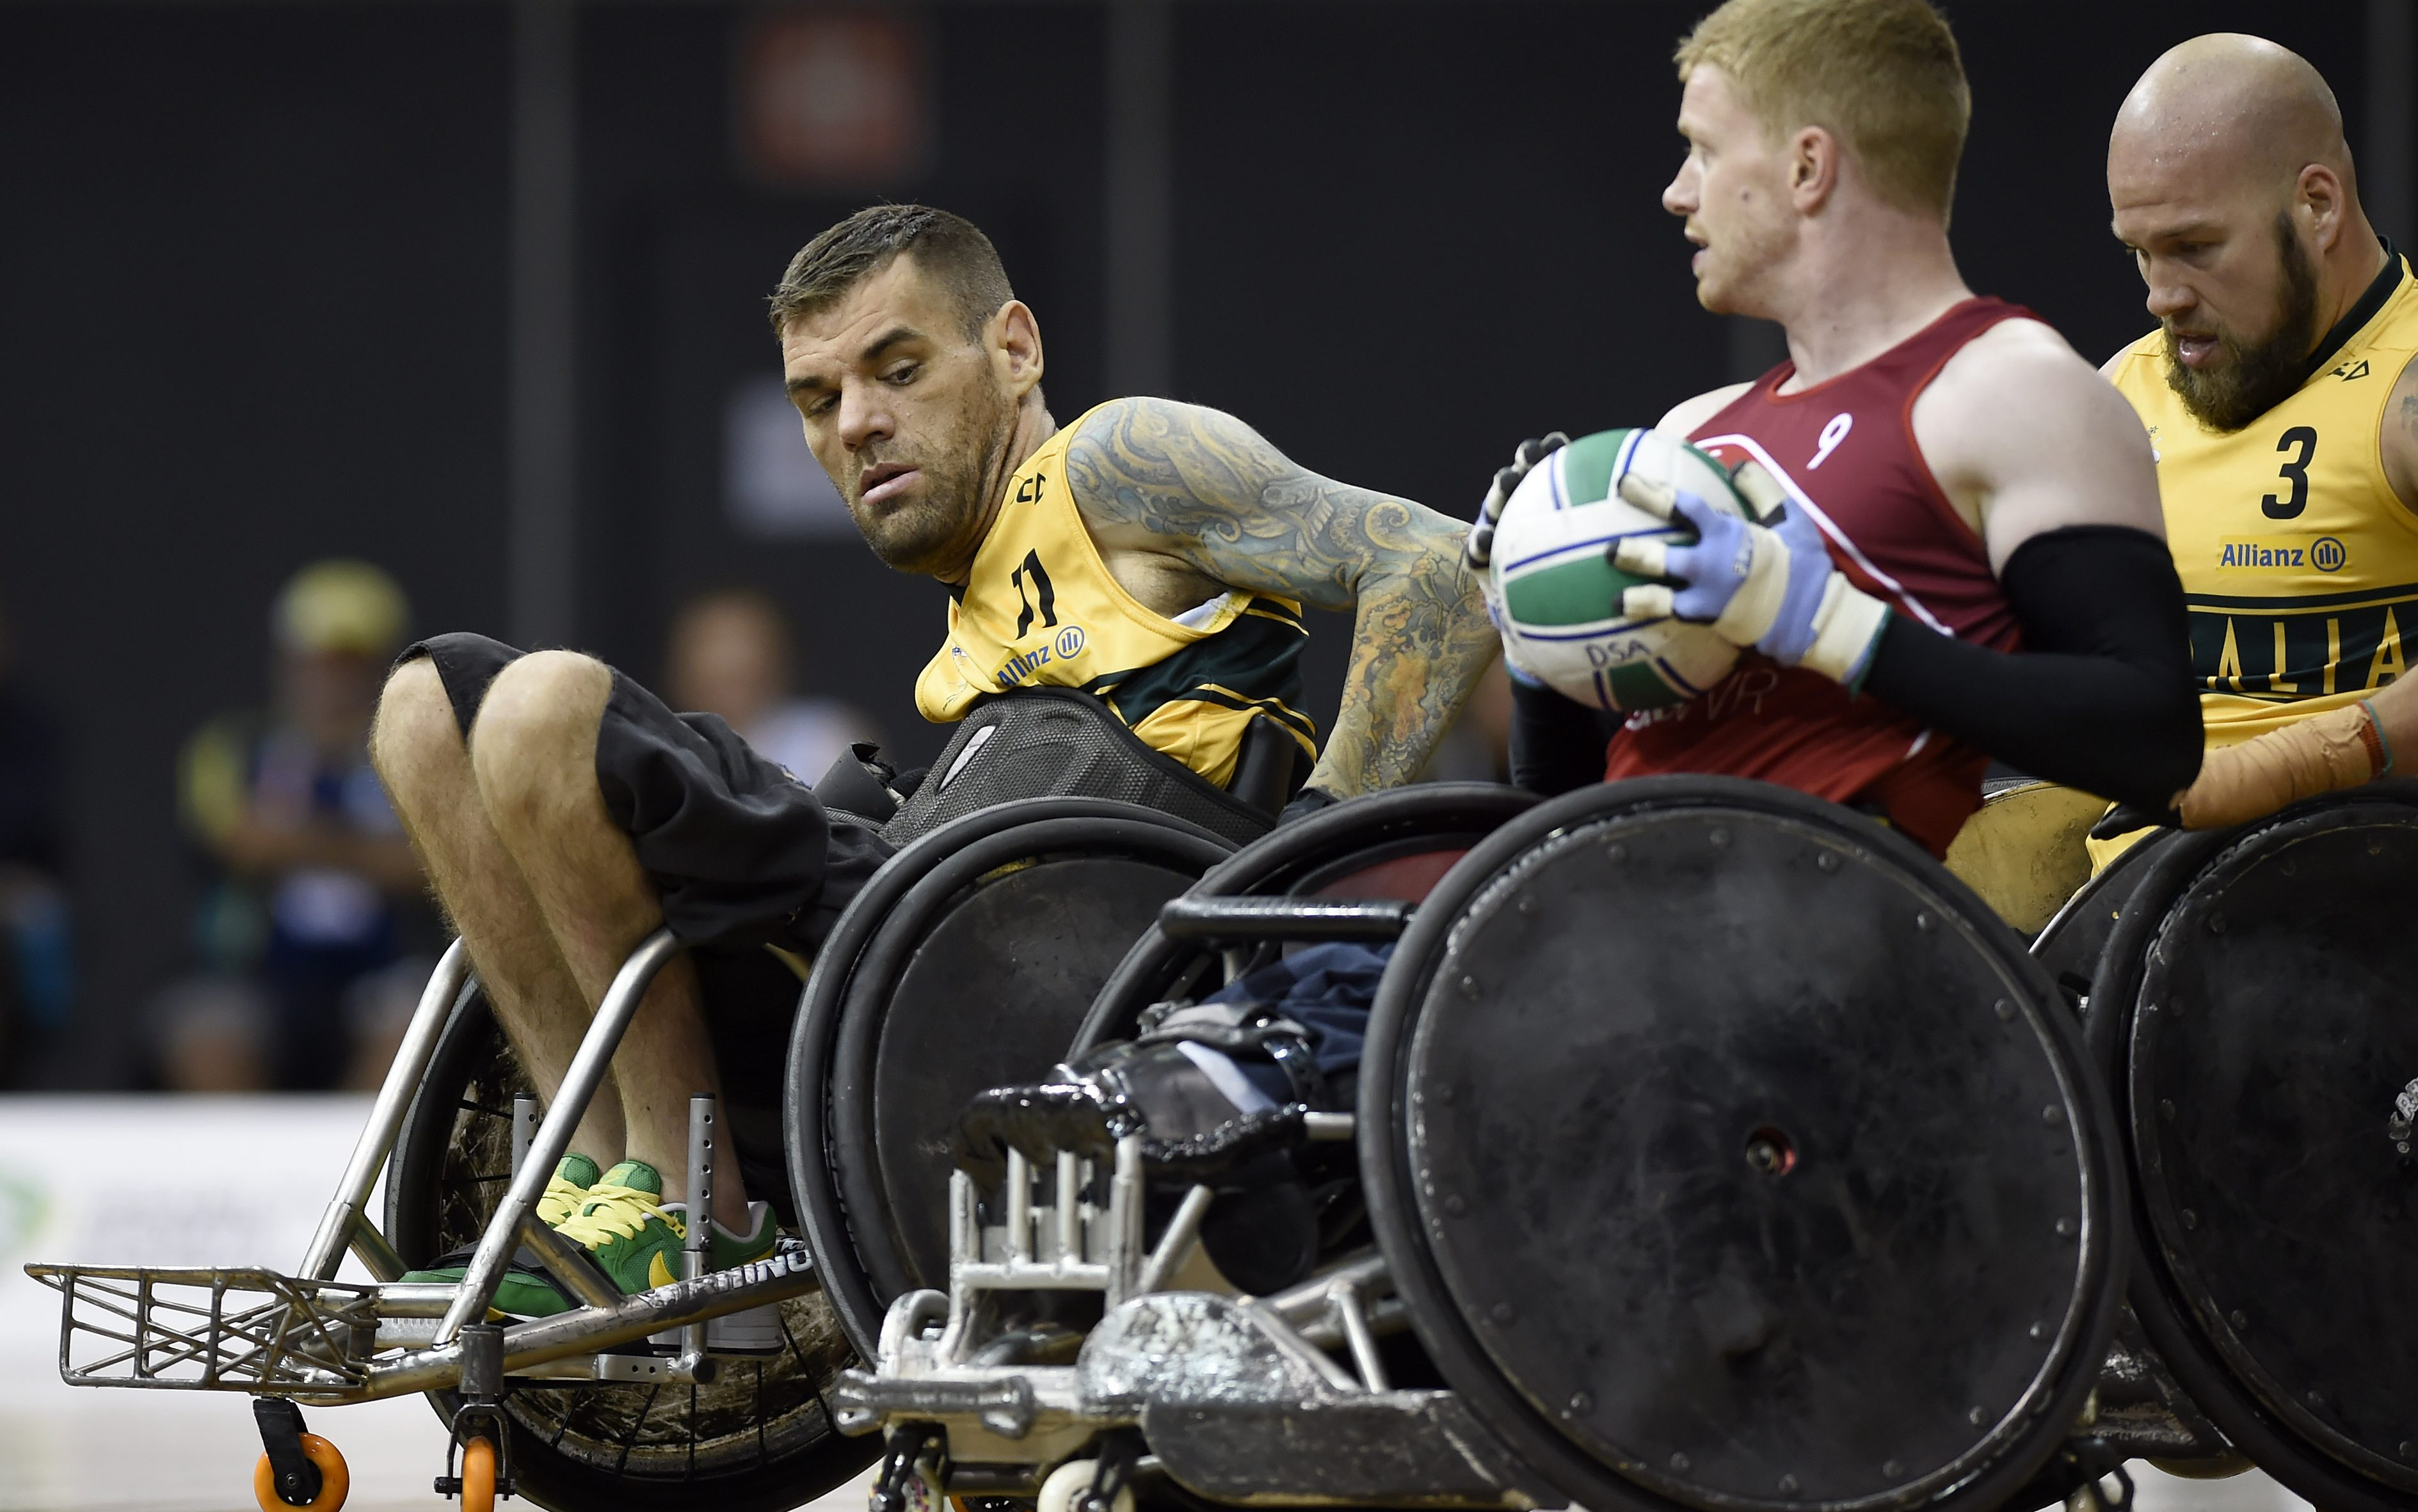 Australia to play gold medal match at IWRF Wheelchair Rugby World Championship